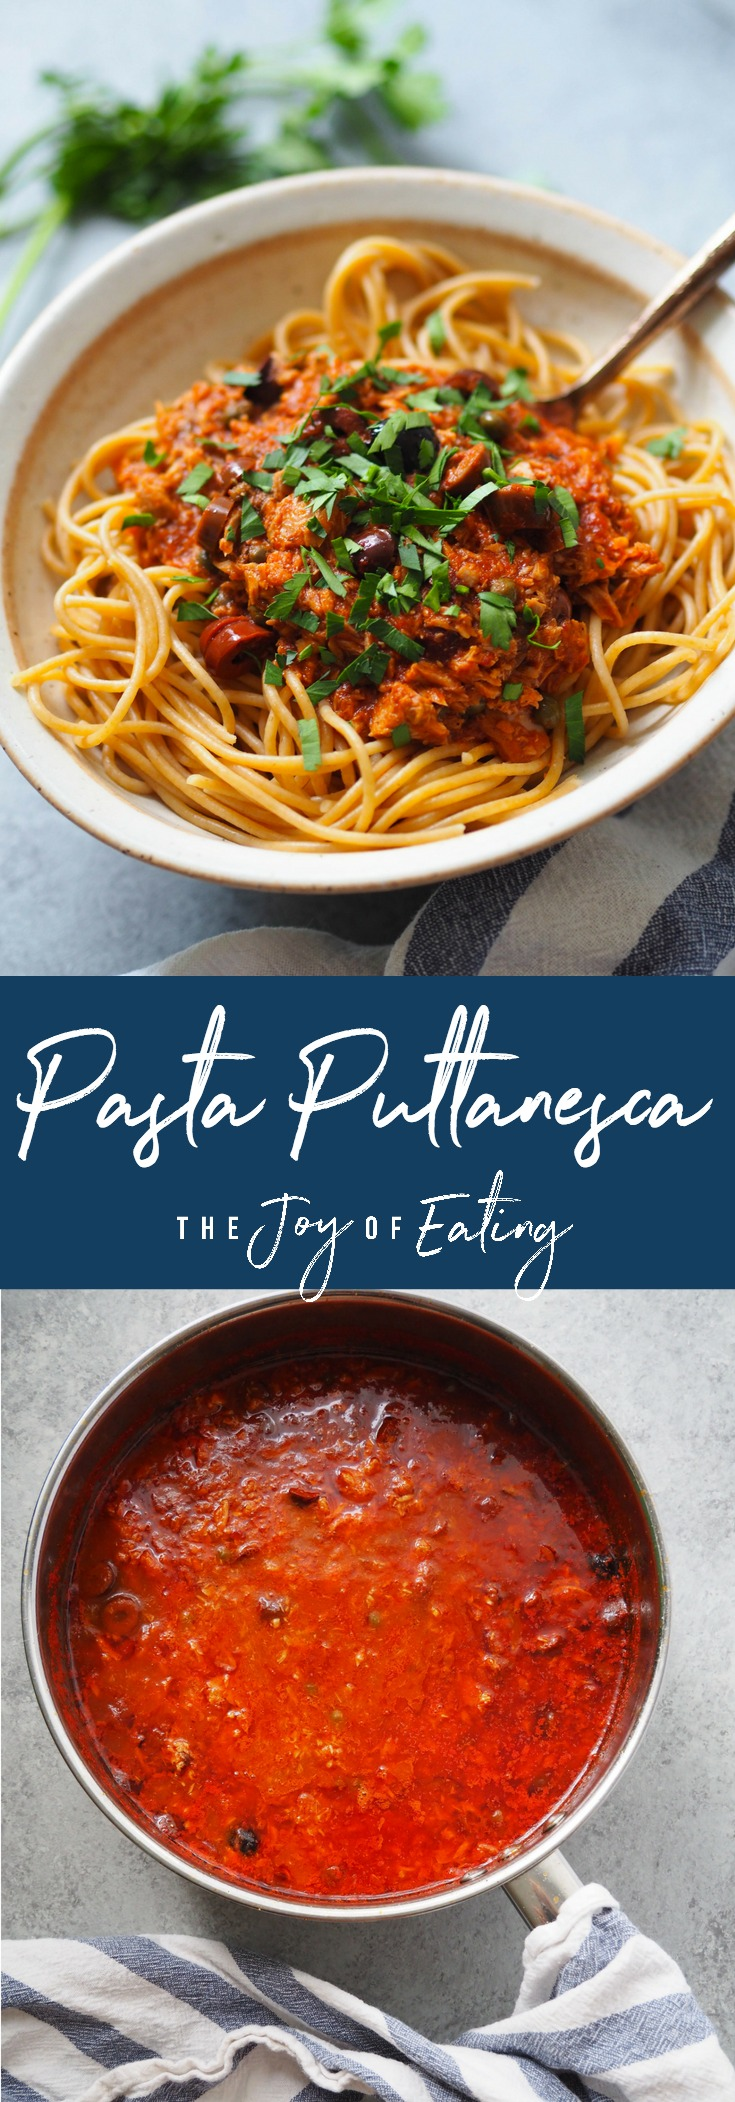 Make this easy pasta puttanesca with all pantry ingredients! It's my favorite pasta dinner for busy weeknights! #pasta #pastaputtanesca #tuna #spaghetti #healthyrecipe